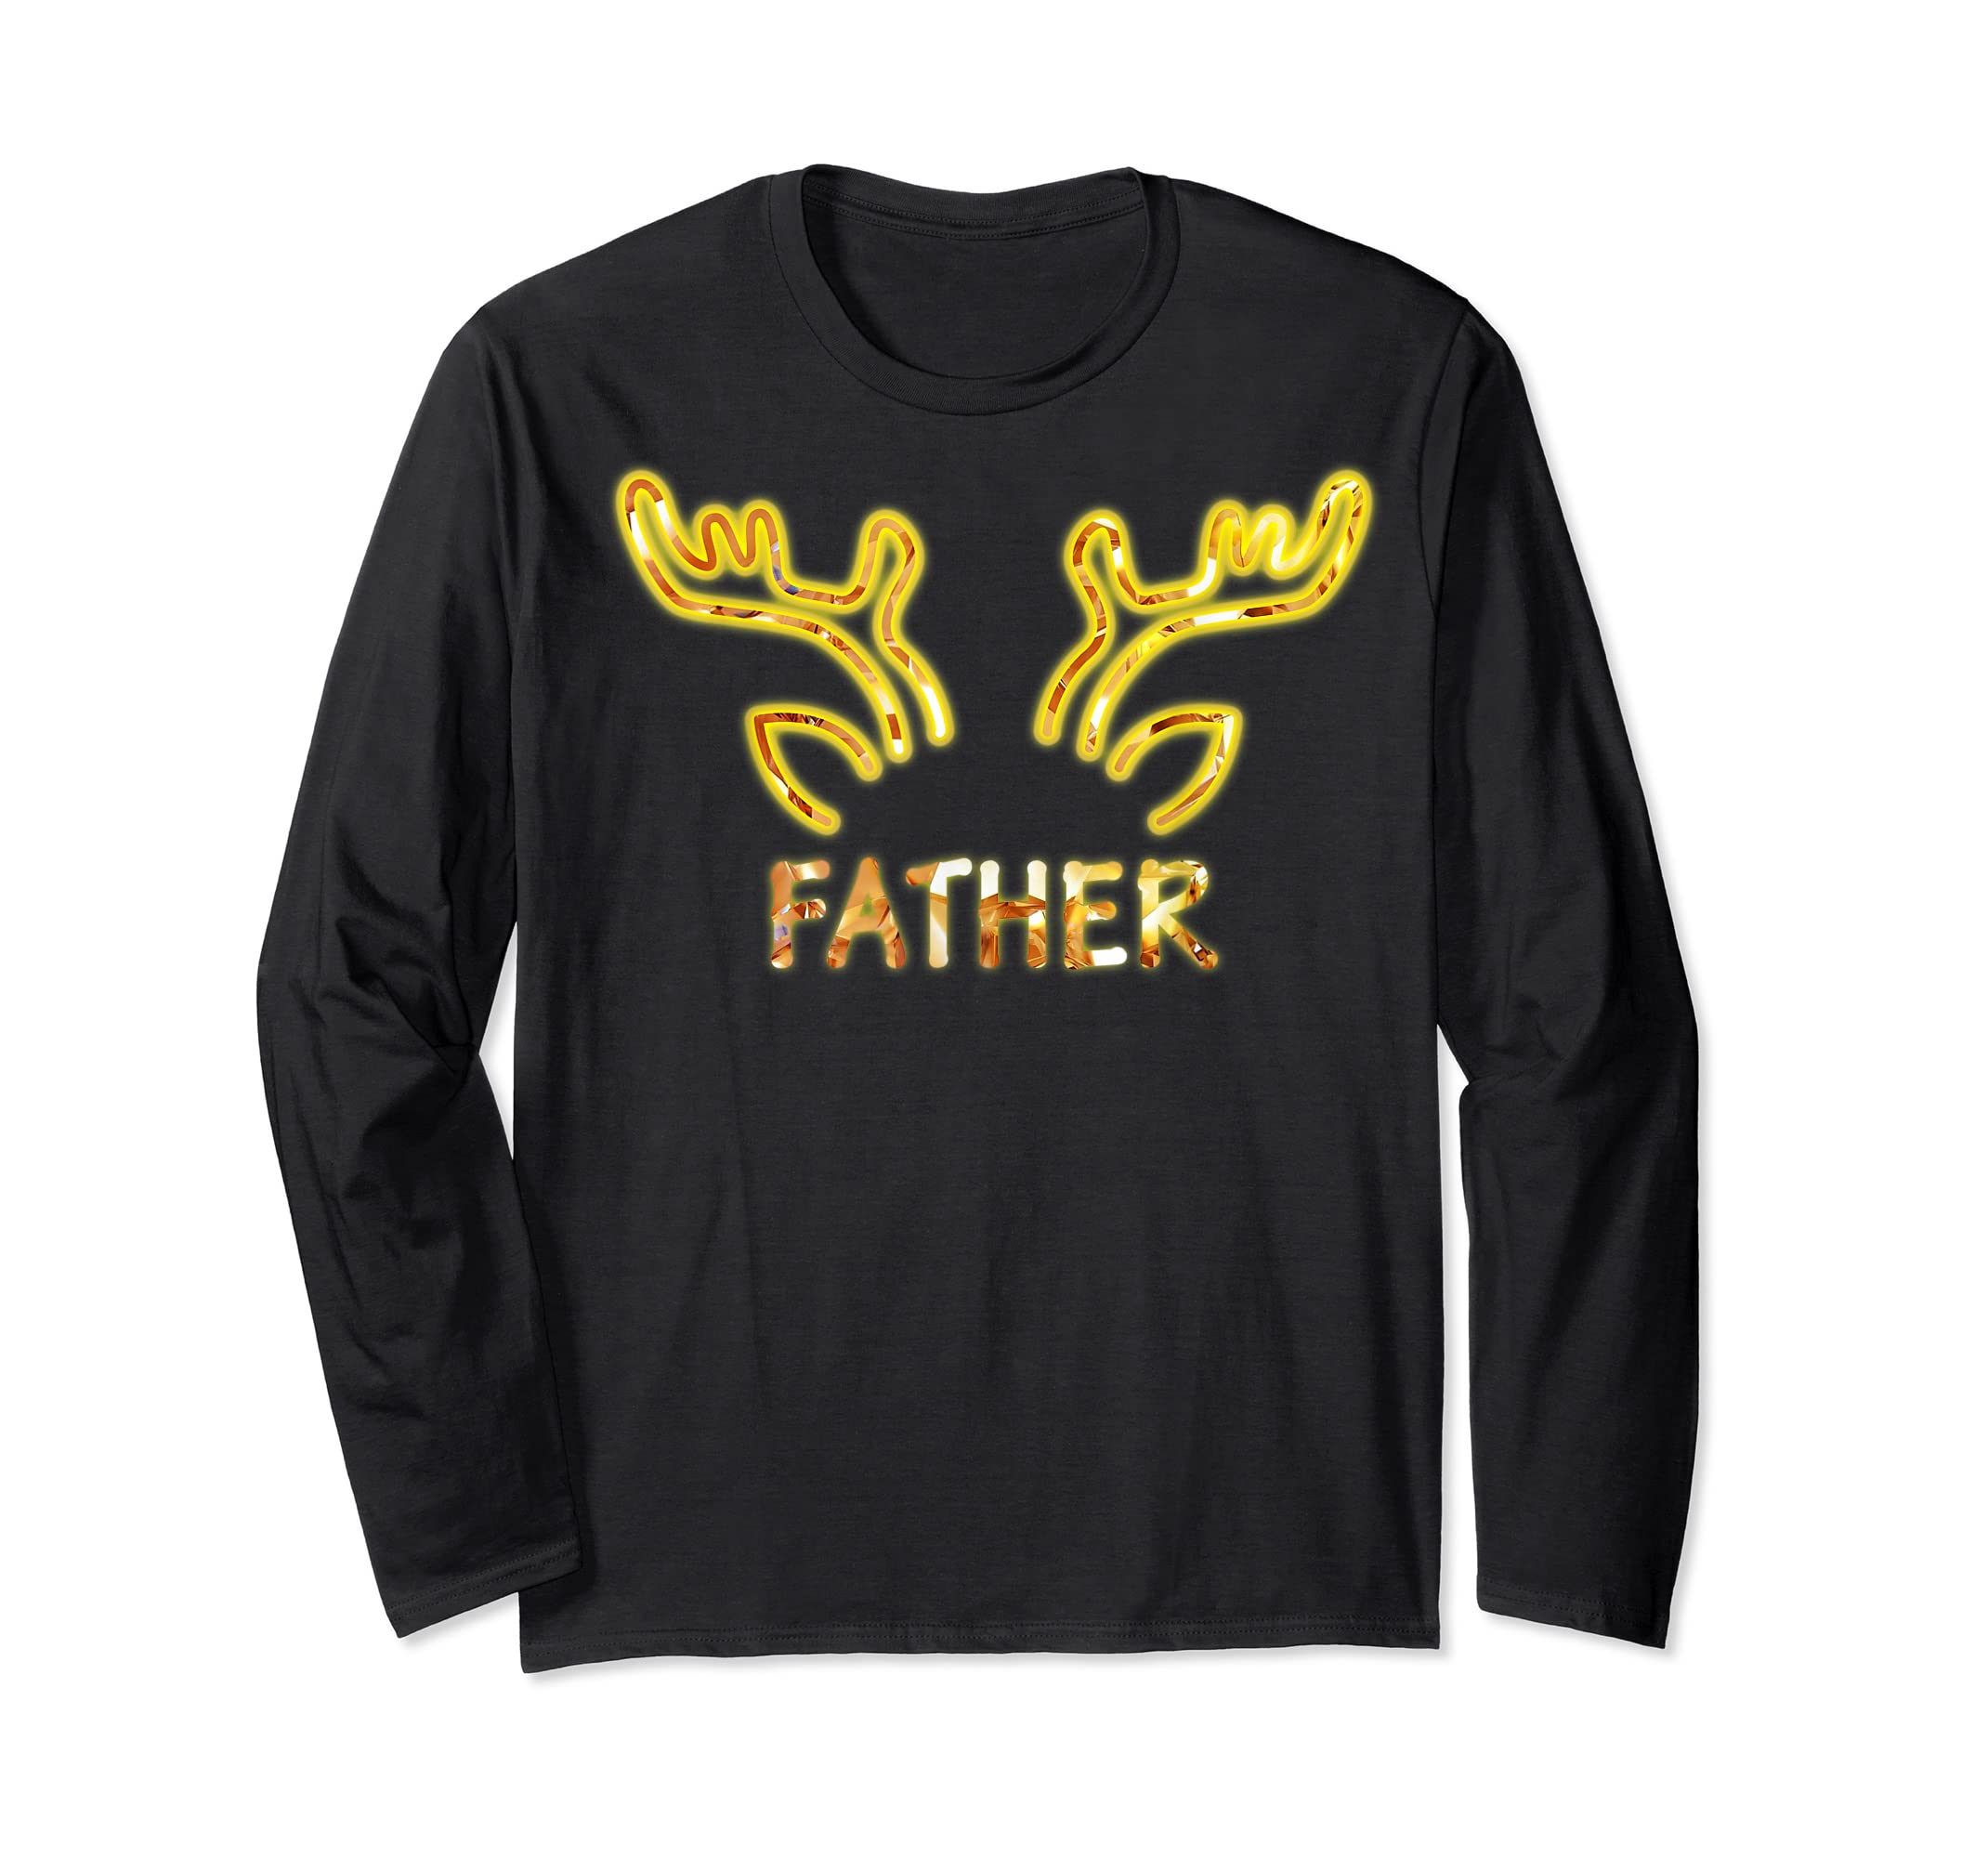 Father Reindeer Matching Family Christmas T-Shirt T-Shirt-Long Sleeve-Black